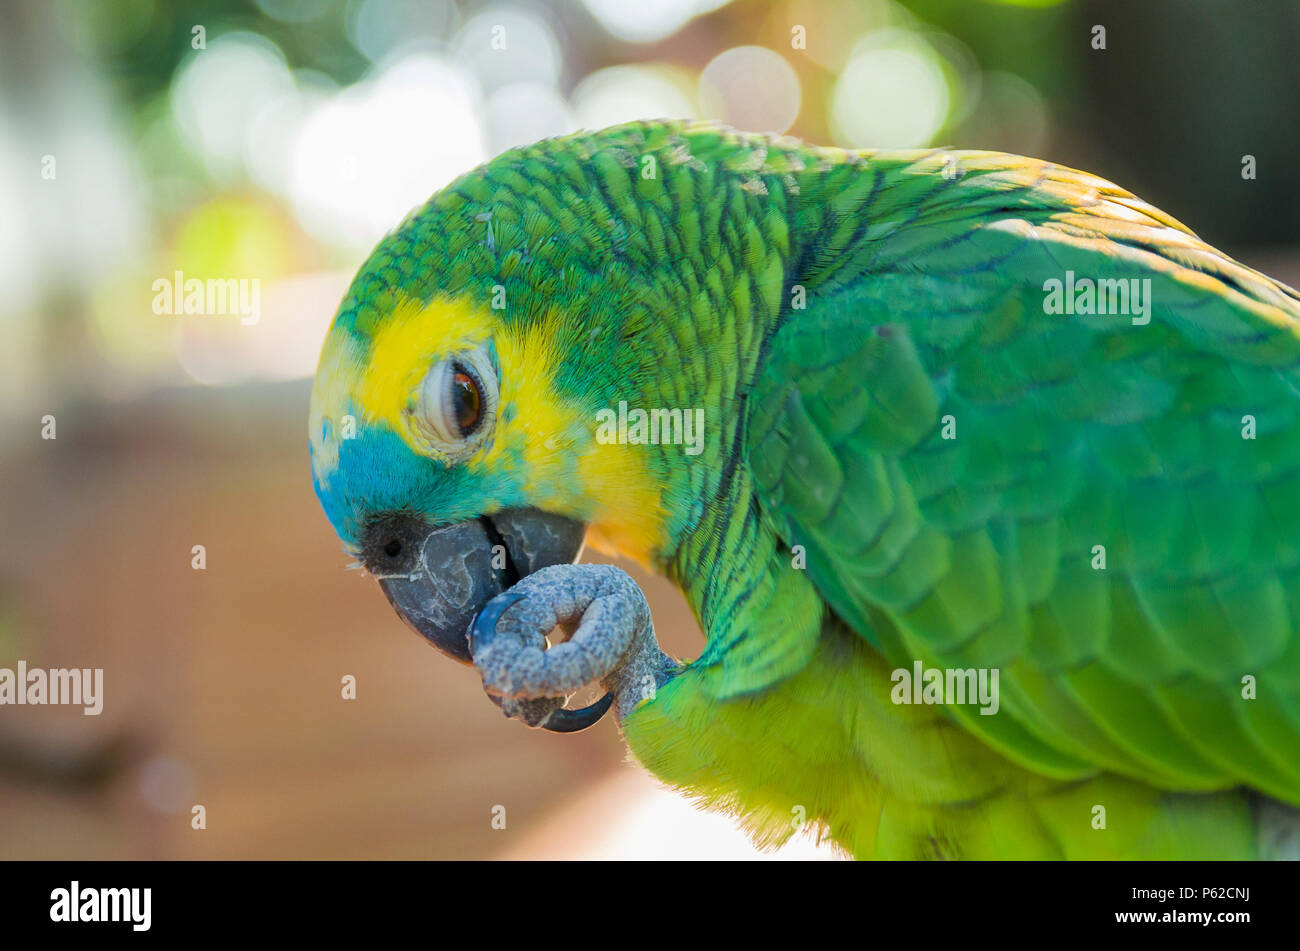 Beautiful True Parrot or Turquoise-fronted Parrot (Amazona aestiva), in the Brazilian wetland. - Stock Image